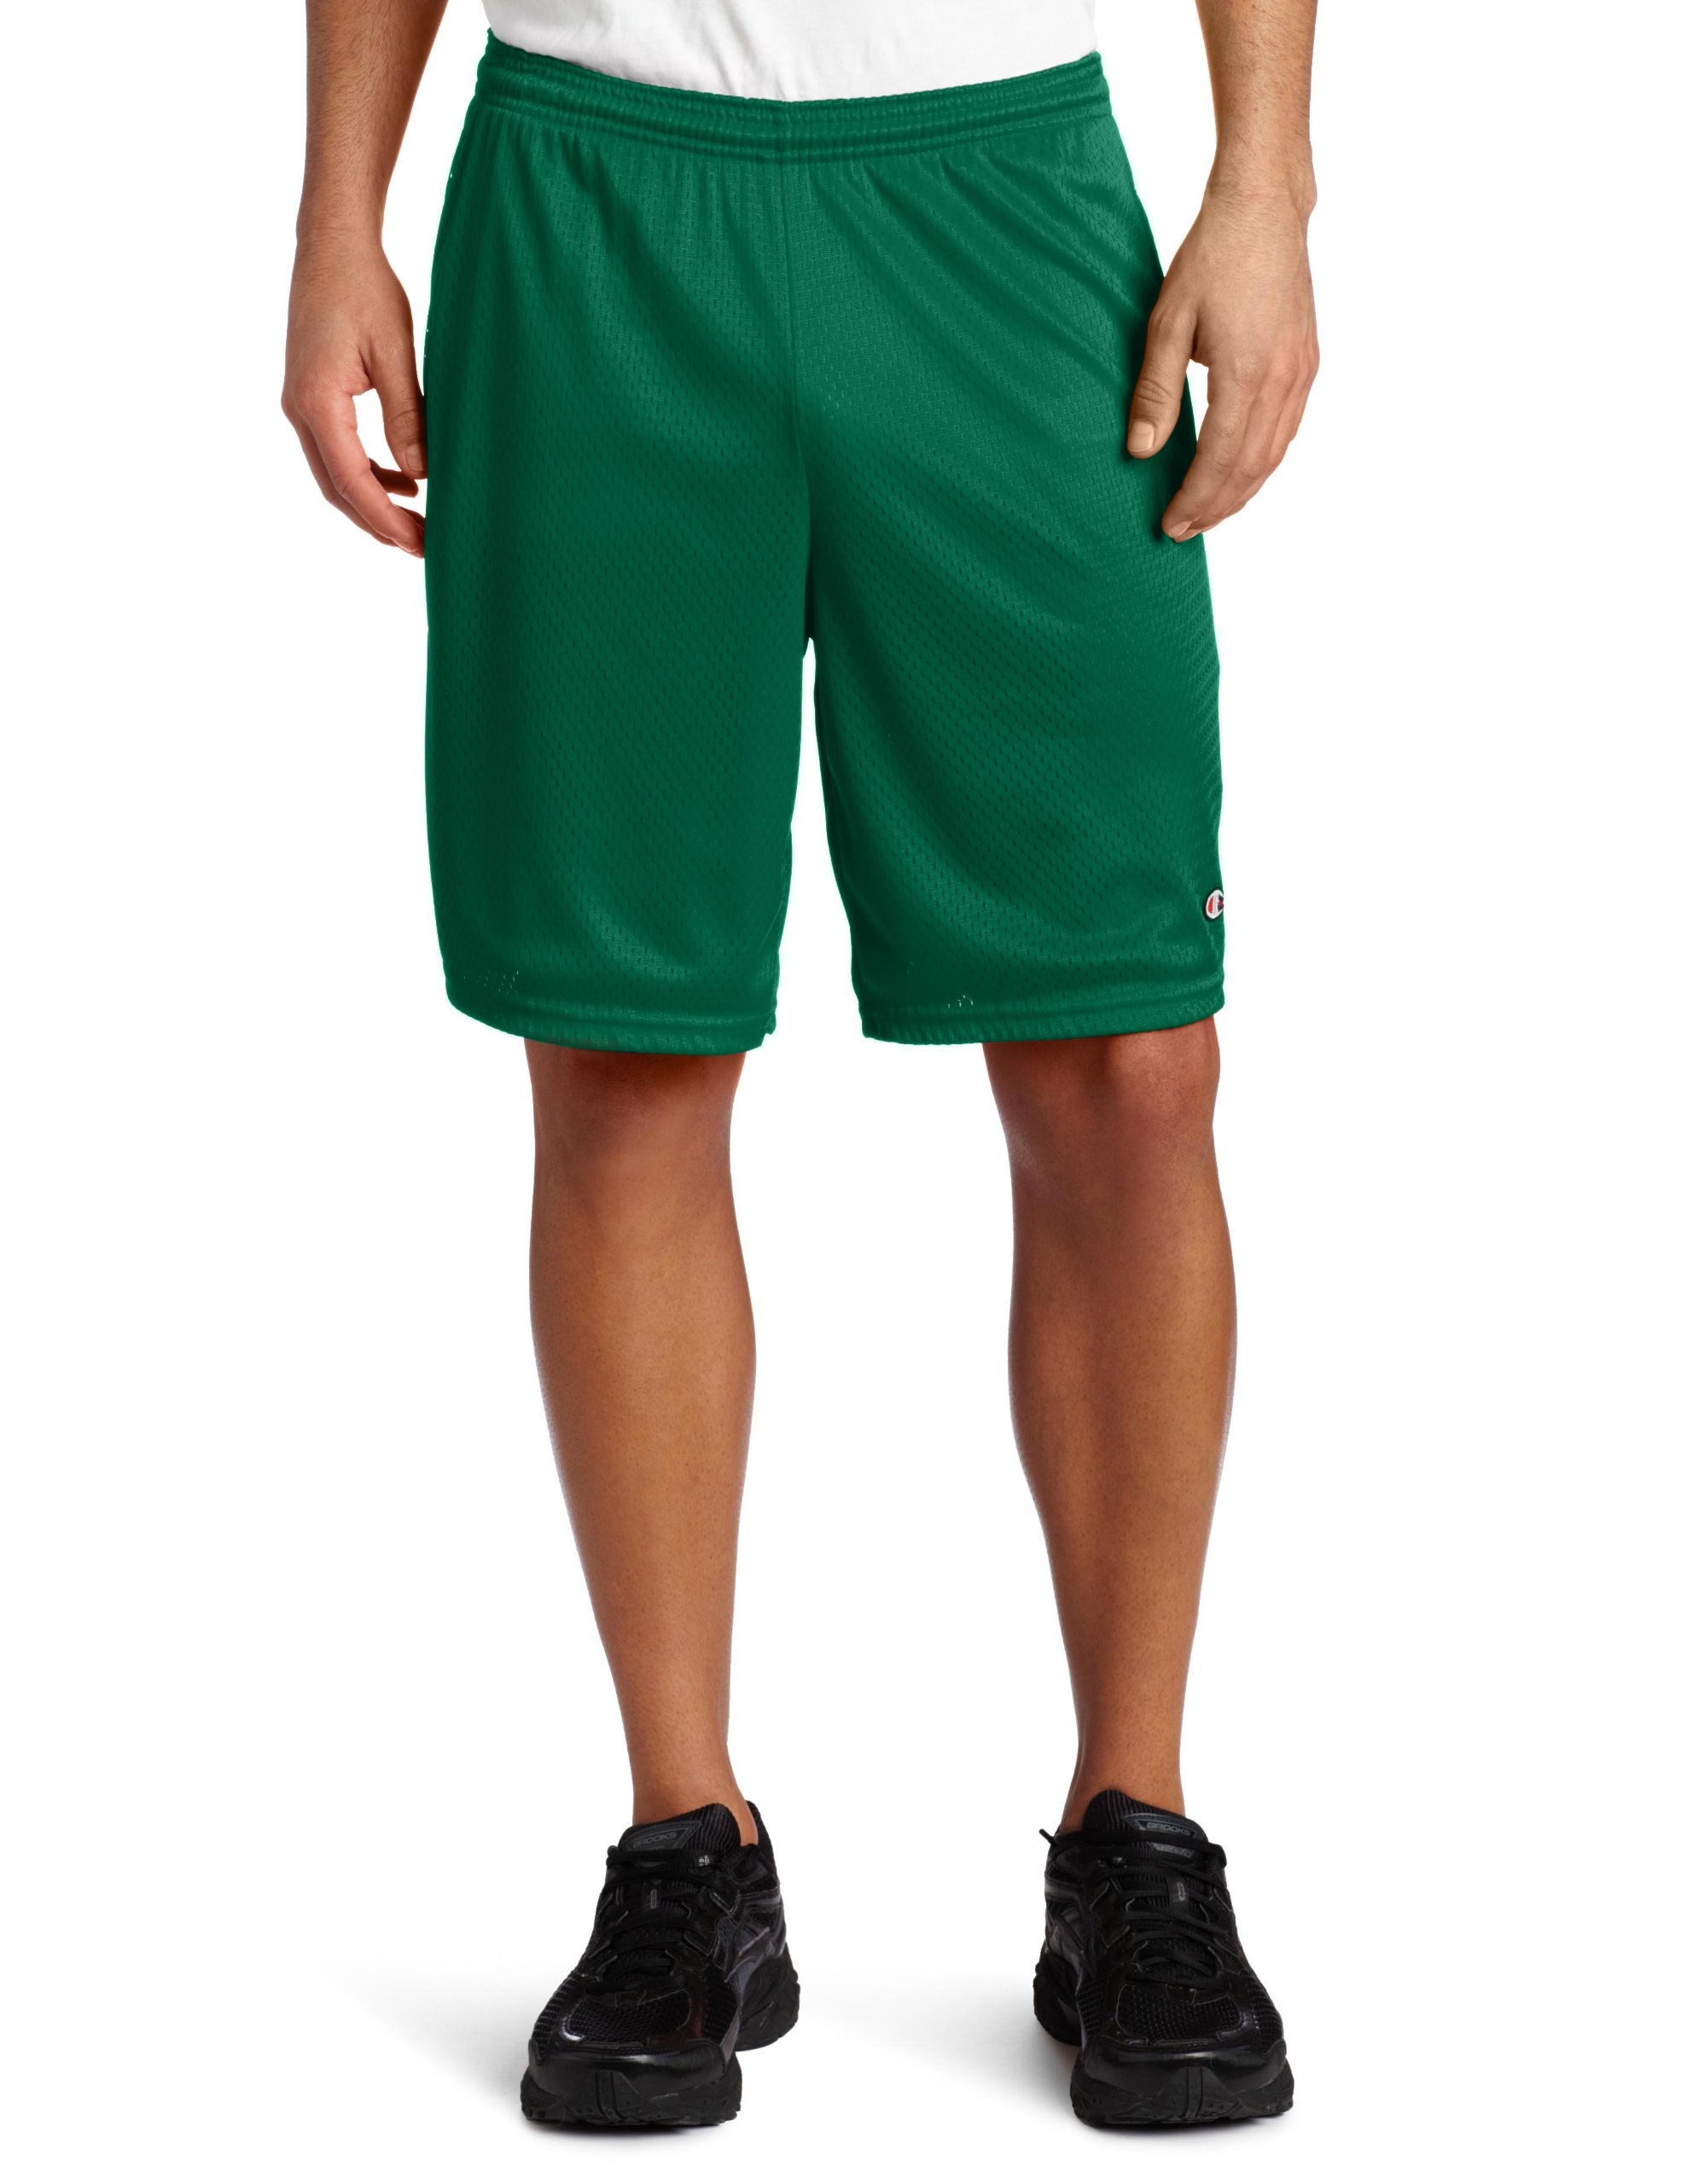 Champion Men's Long Mesh Short With Pockets, Varsity Green, Large by Champion